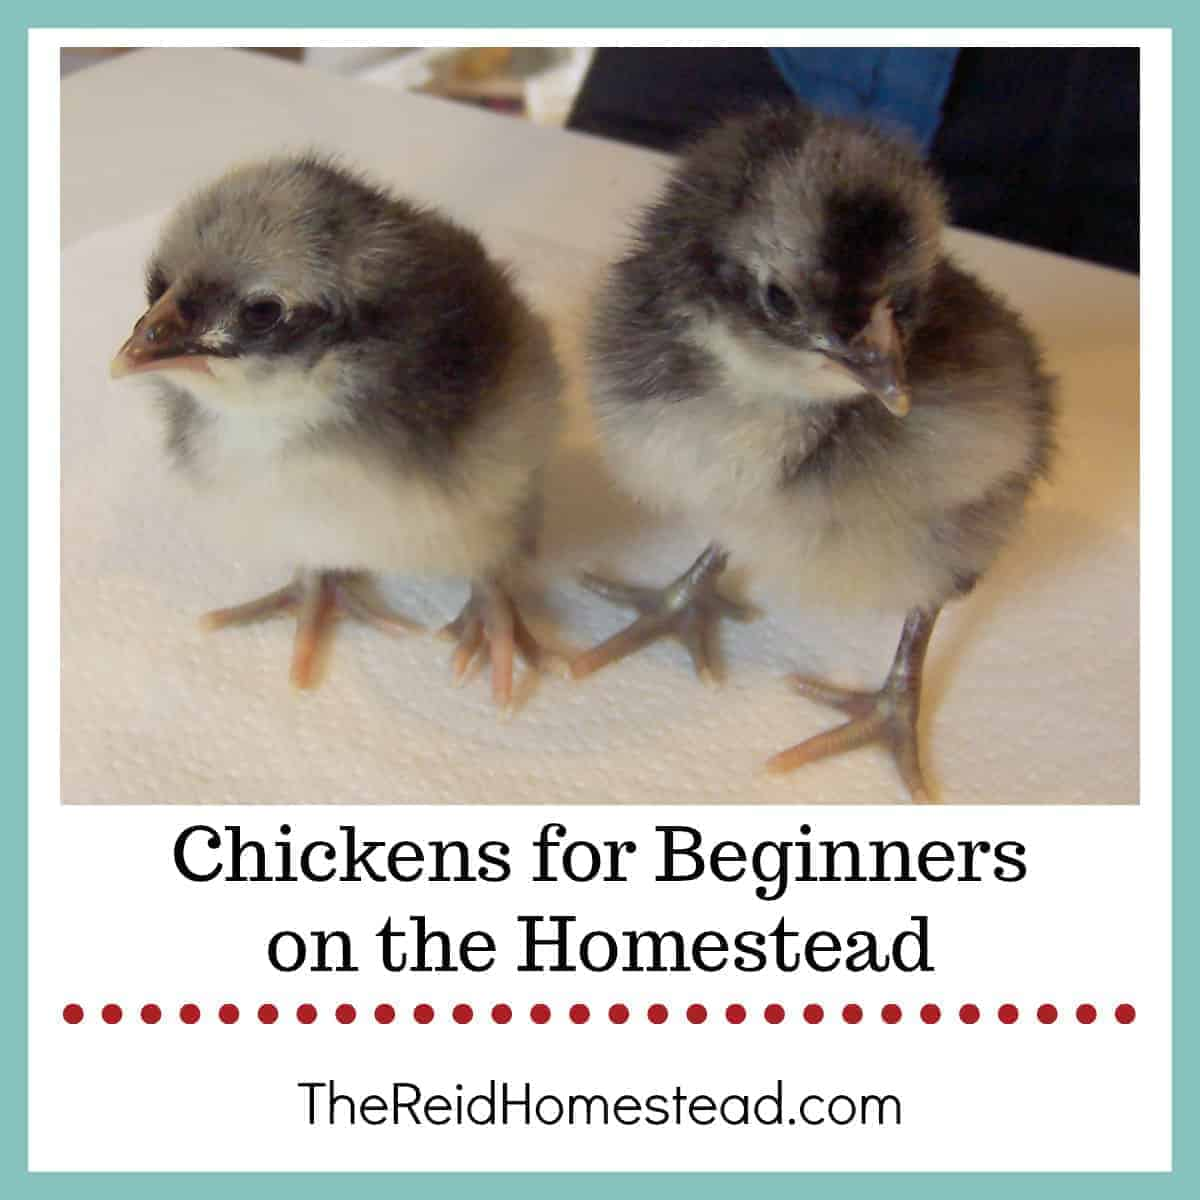 Chickens for Beginners on the Homestead